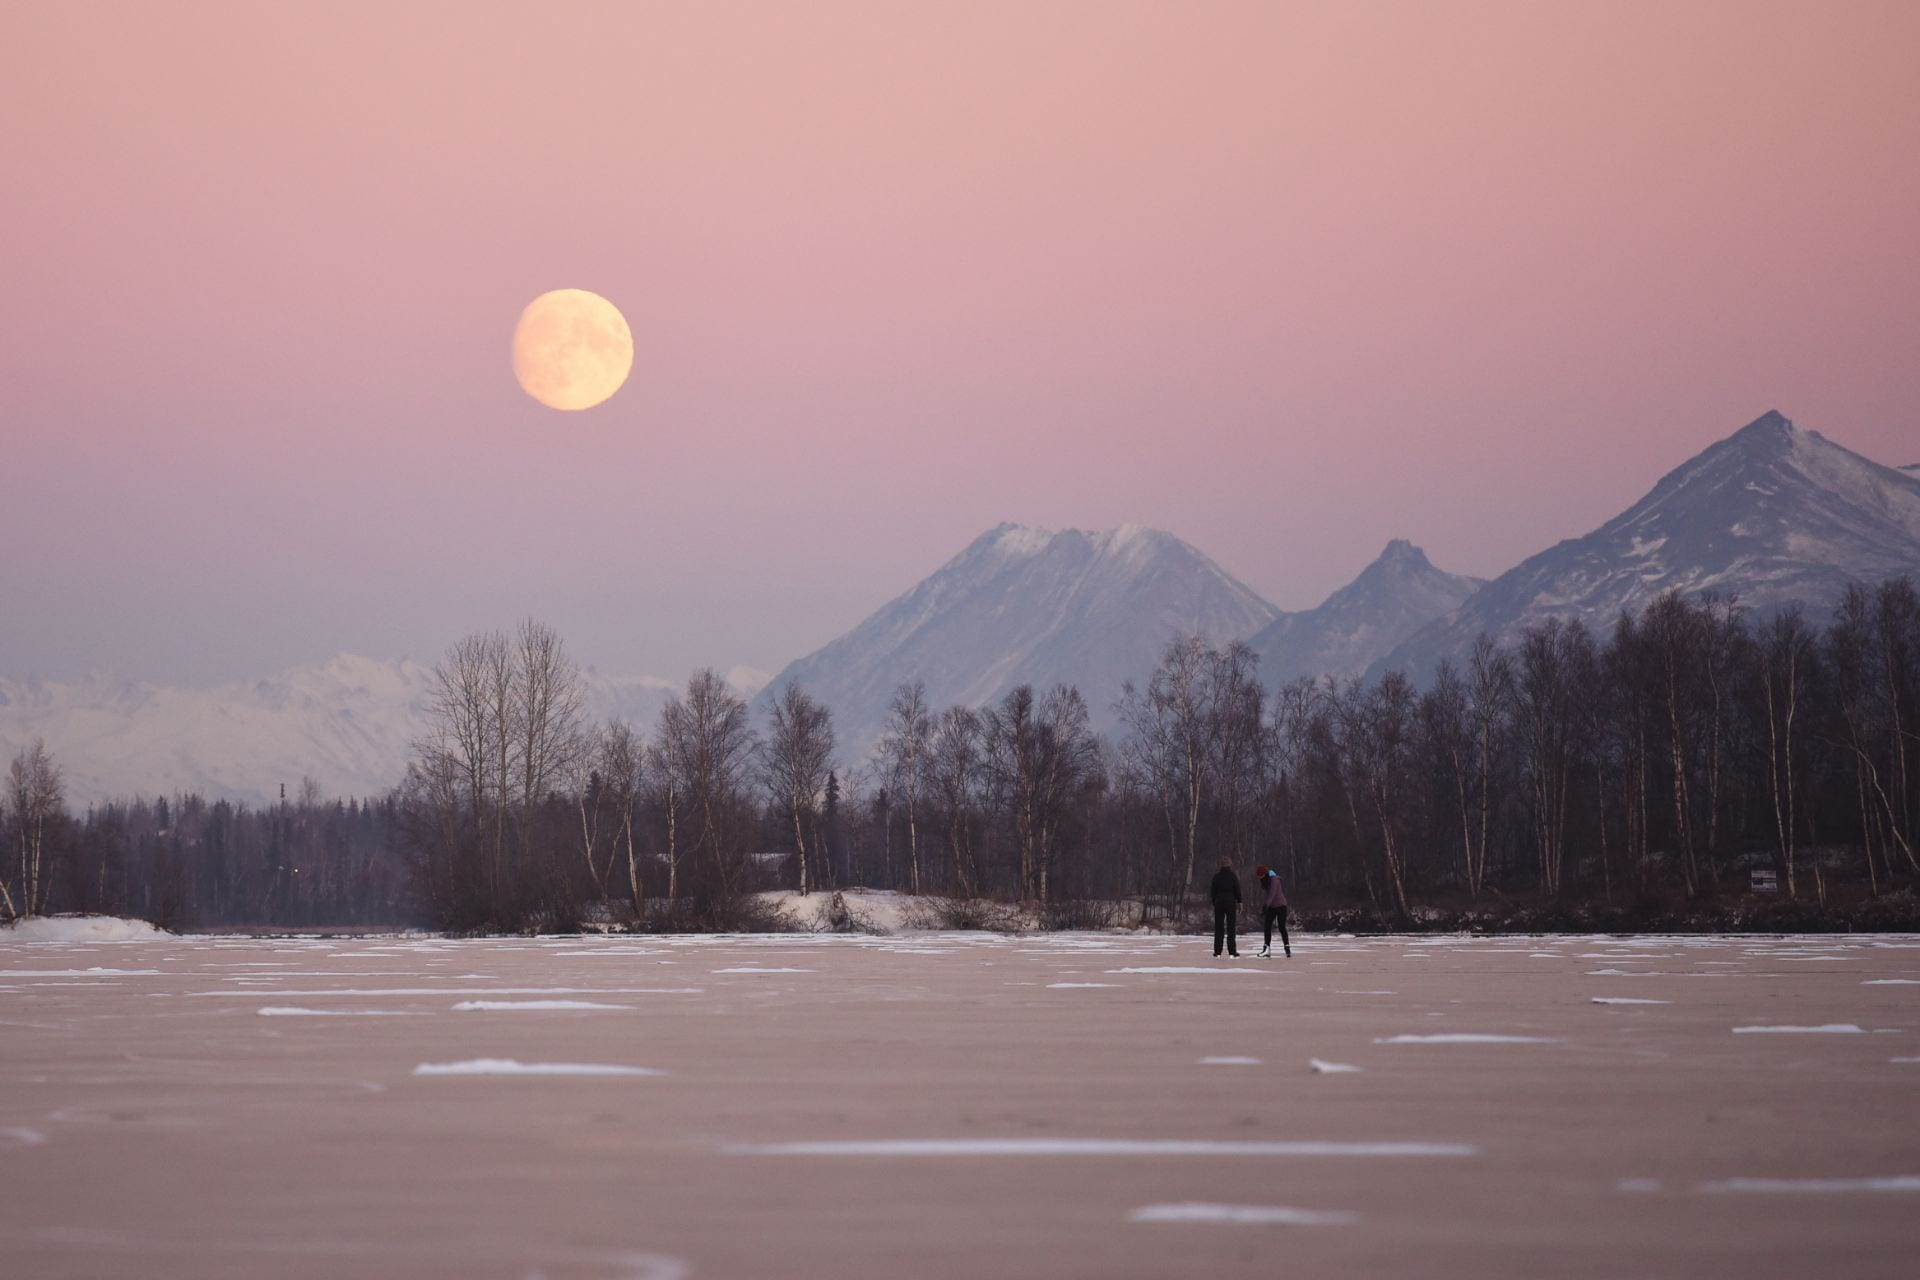 Skating on Wasilla Lake, in southcentral Alaska. (Image: Paxson Woelber/Unsplash)